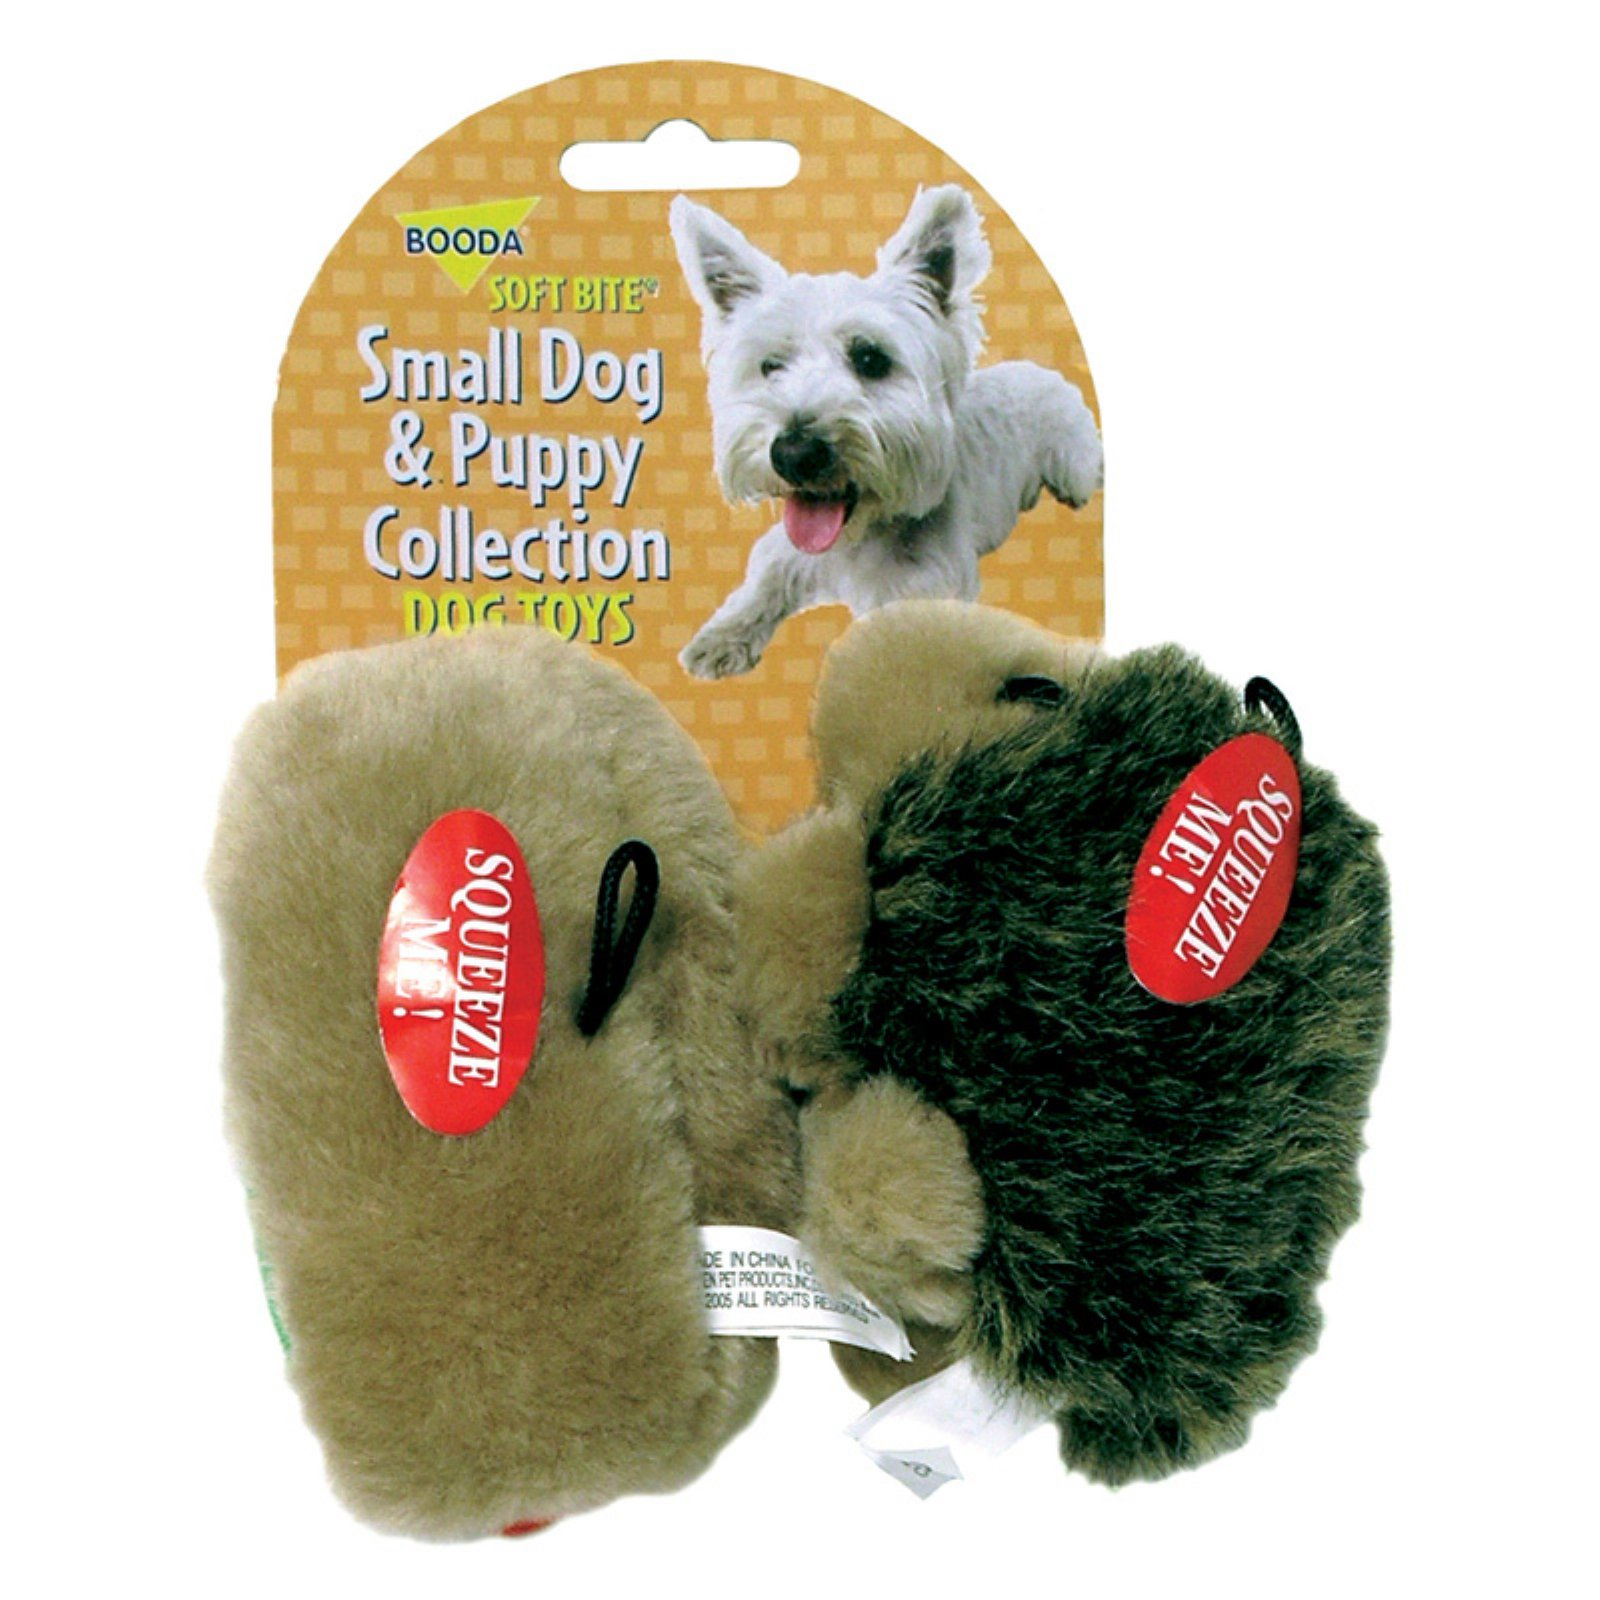 Petmate Doskocil Co. Inc. Dog and Puppy Toy, Hedgehog and Hotdog, Small